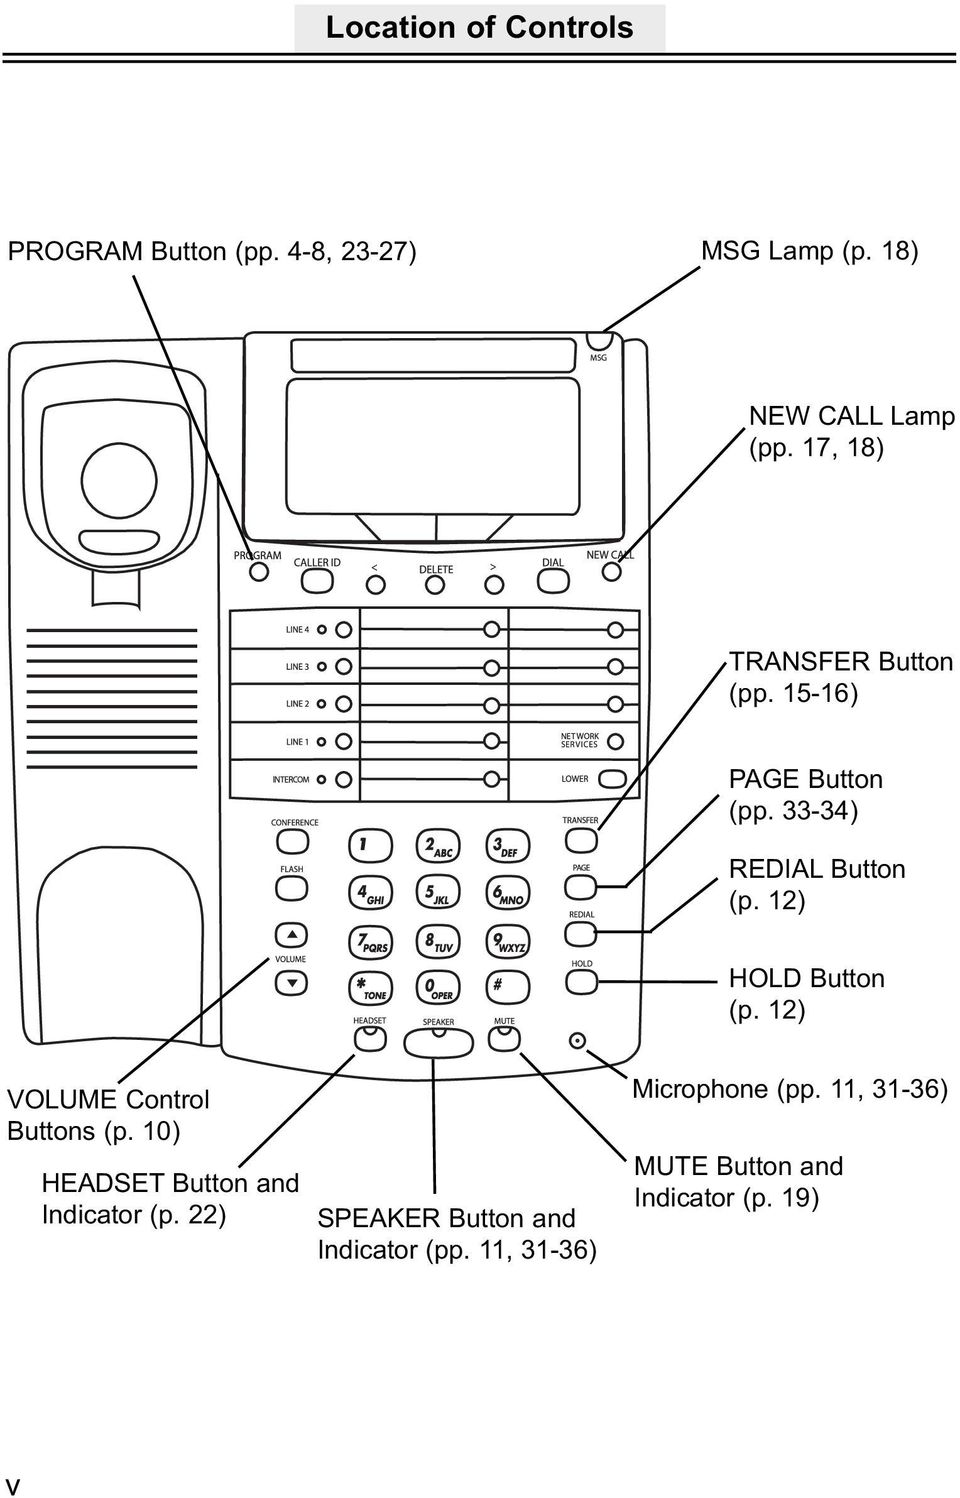 12) HOLD Button (p. 12) VOLUME Control Buttons (p. 10) HEADSET Button and Indicator (p.